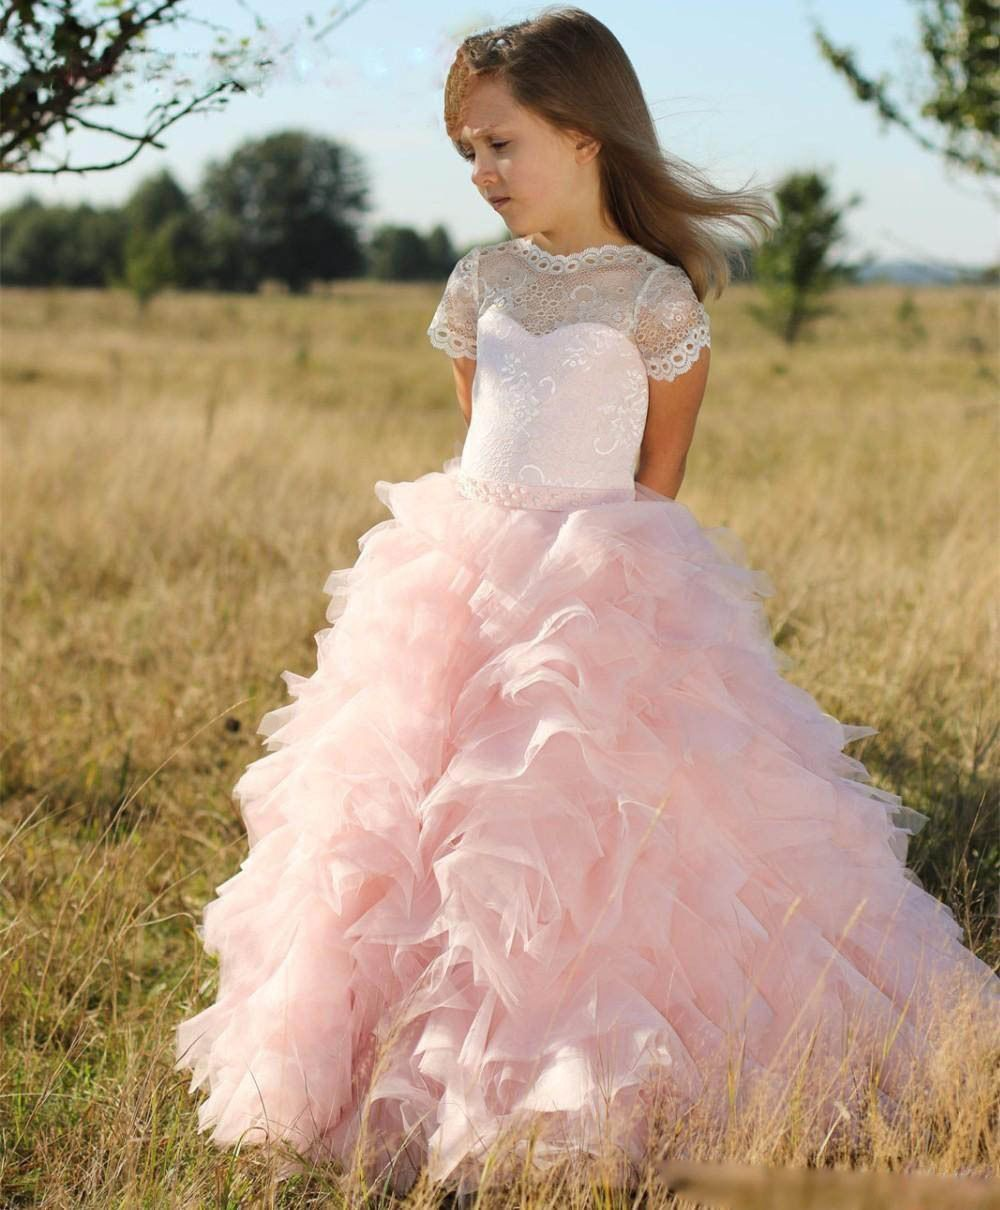 Cute long sleeves ball gown flower girl dresses with bow in